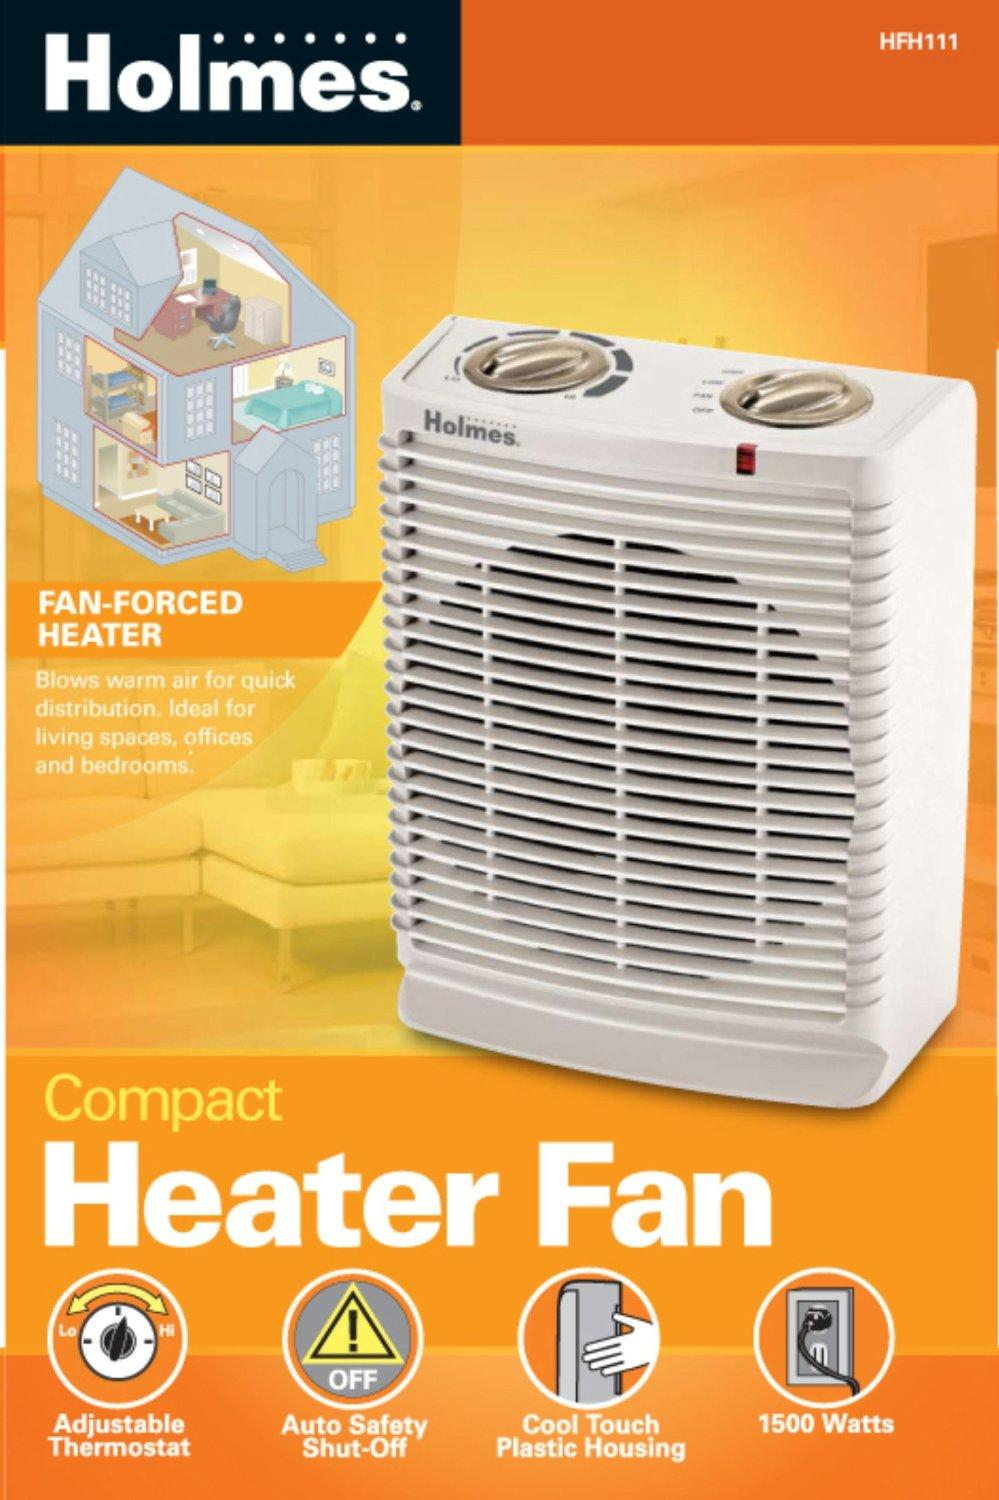 Holmes Portable Desktop Heater with Comfort Control Thermostat and